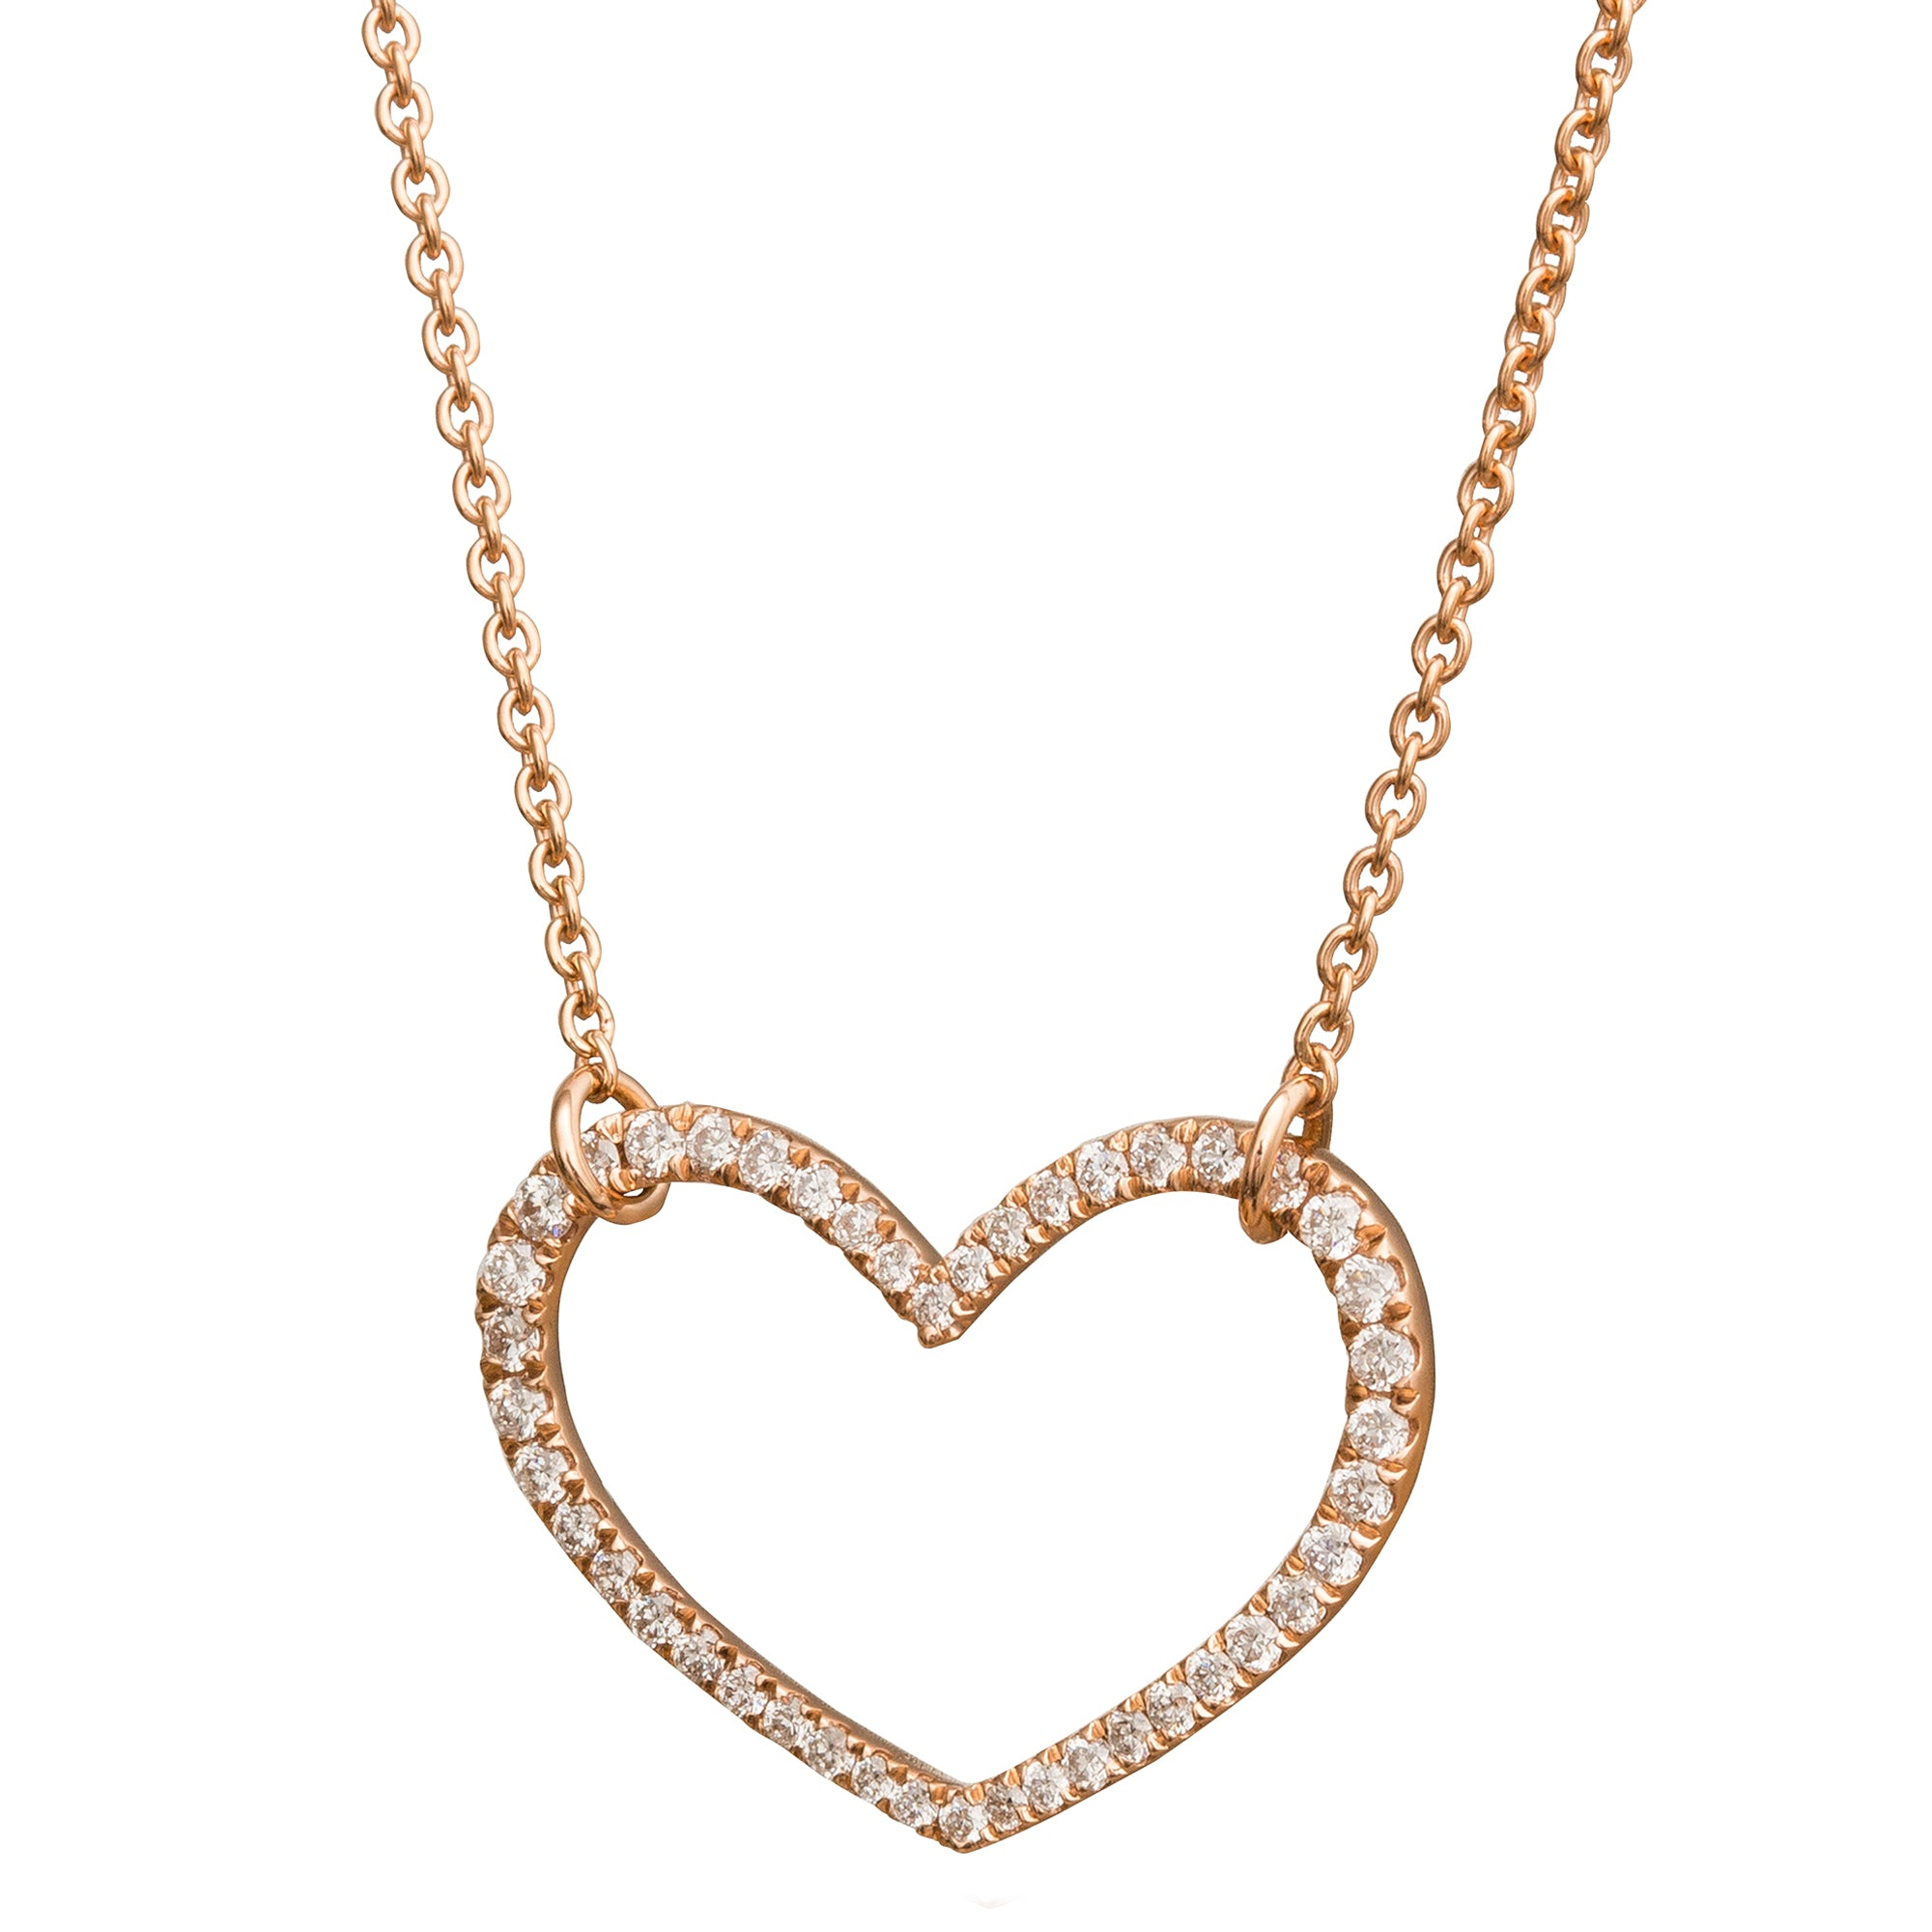 Small Movable Heart Necklace - Rosa de la Cruz - Necklaces | Broken English Jewelry